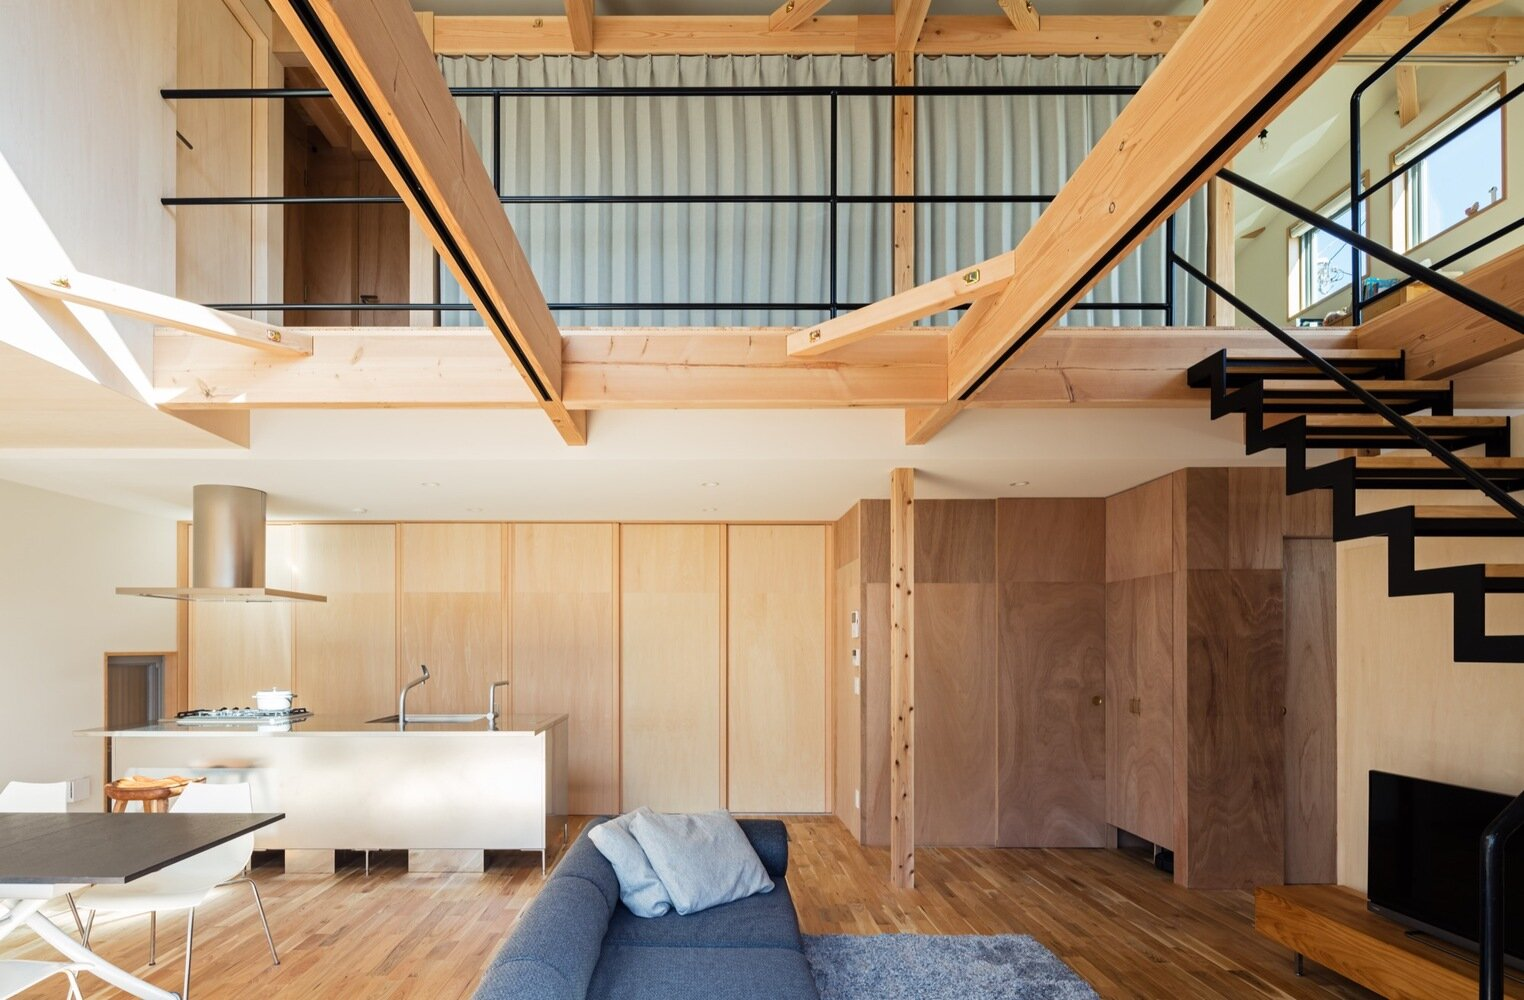 S-House - Coil Kazuteru Matumura Architects - Japan - Living Room - Humble Homes